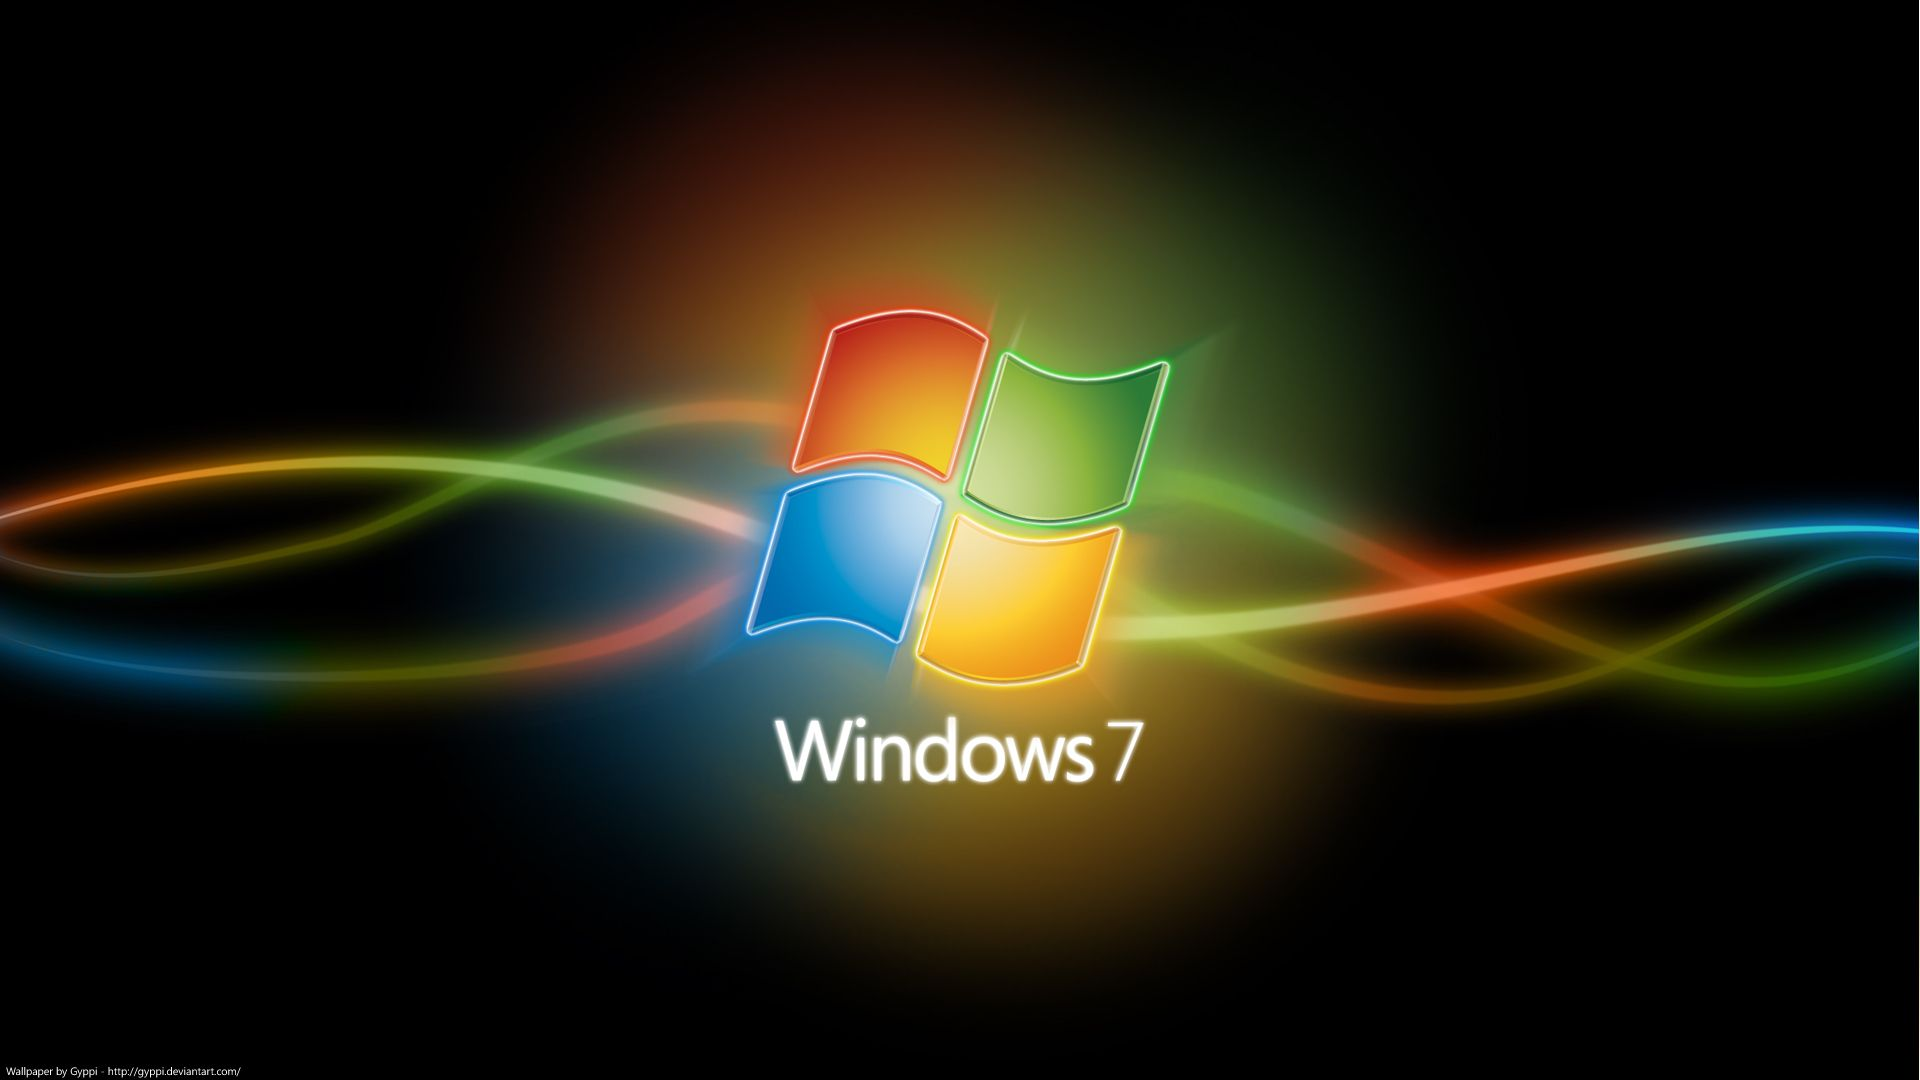 Microsoft Microsoft Windows Wallpapers Free Desktop Wallpaper Fondo Windows Windows Fondos Pantalla Windows 10